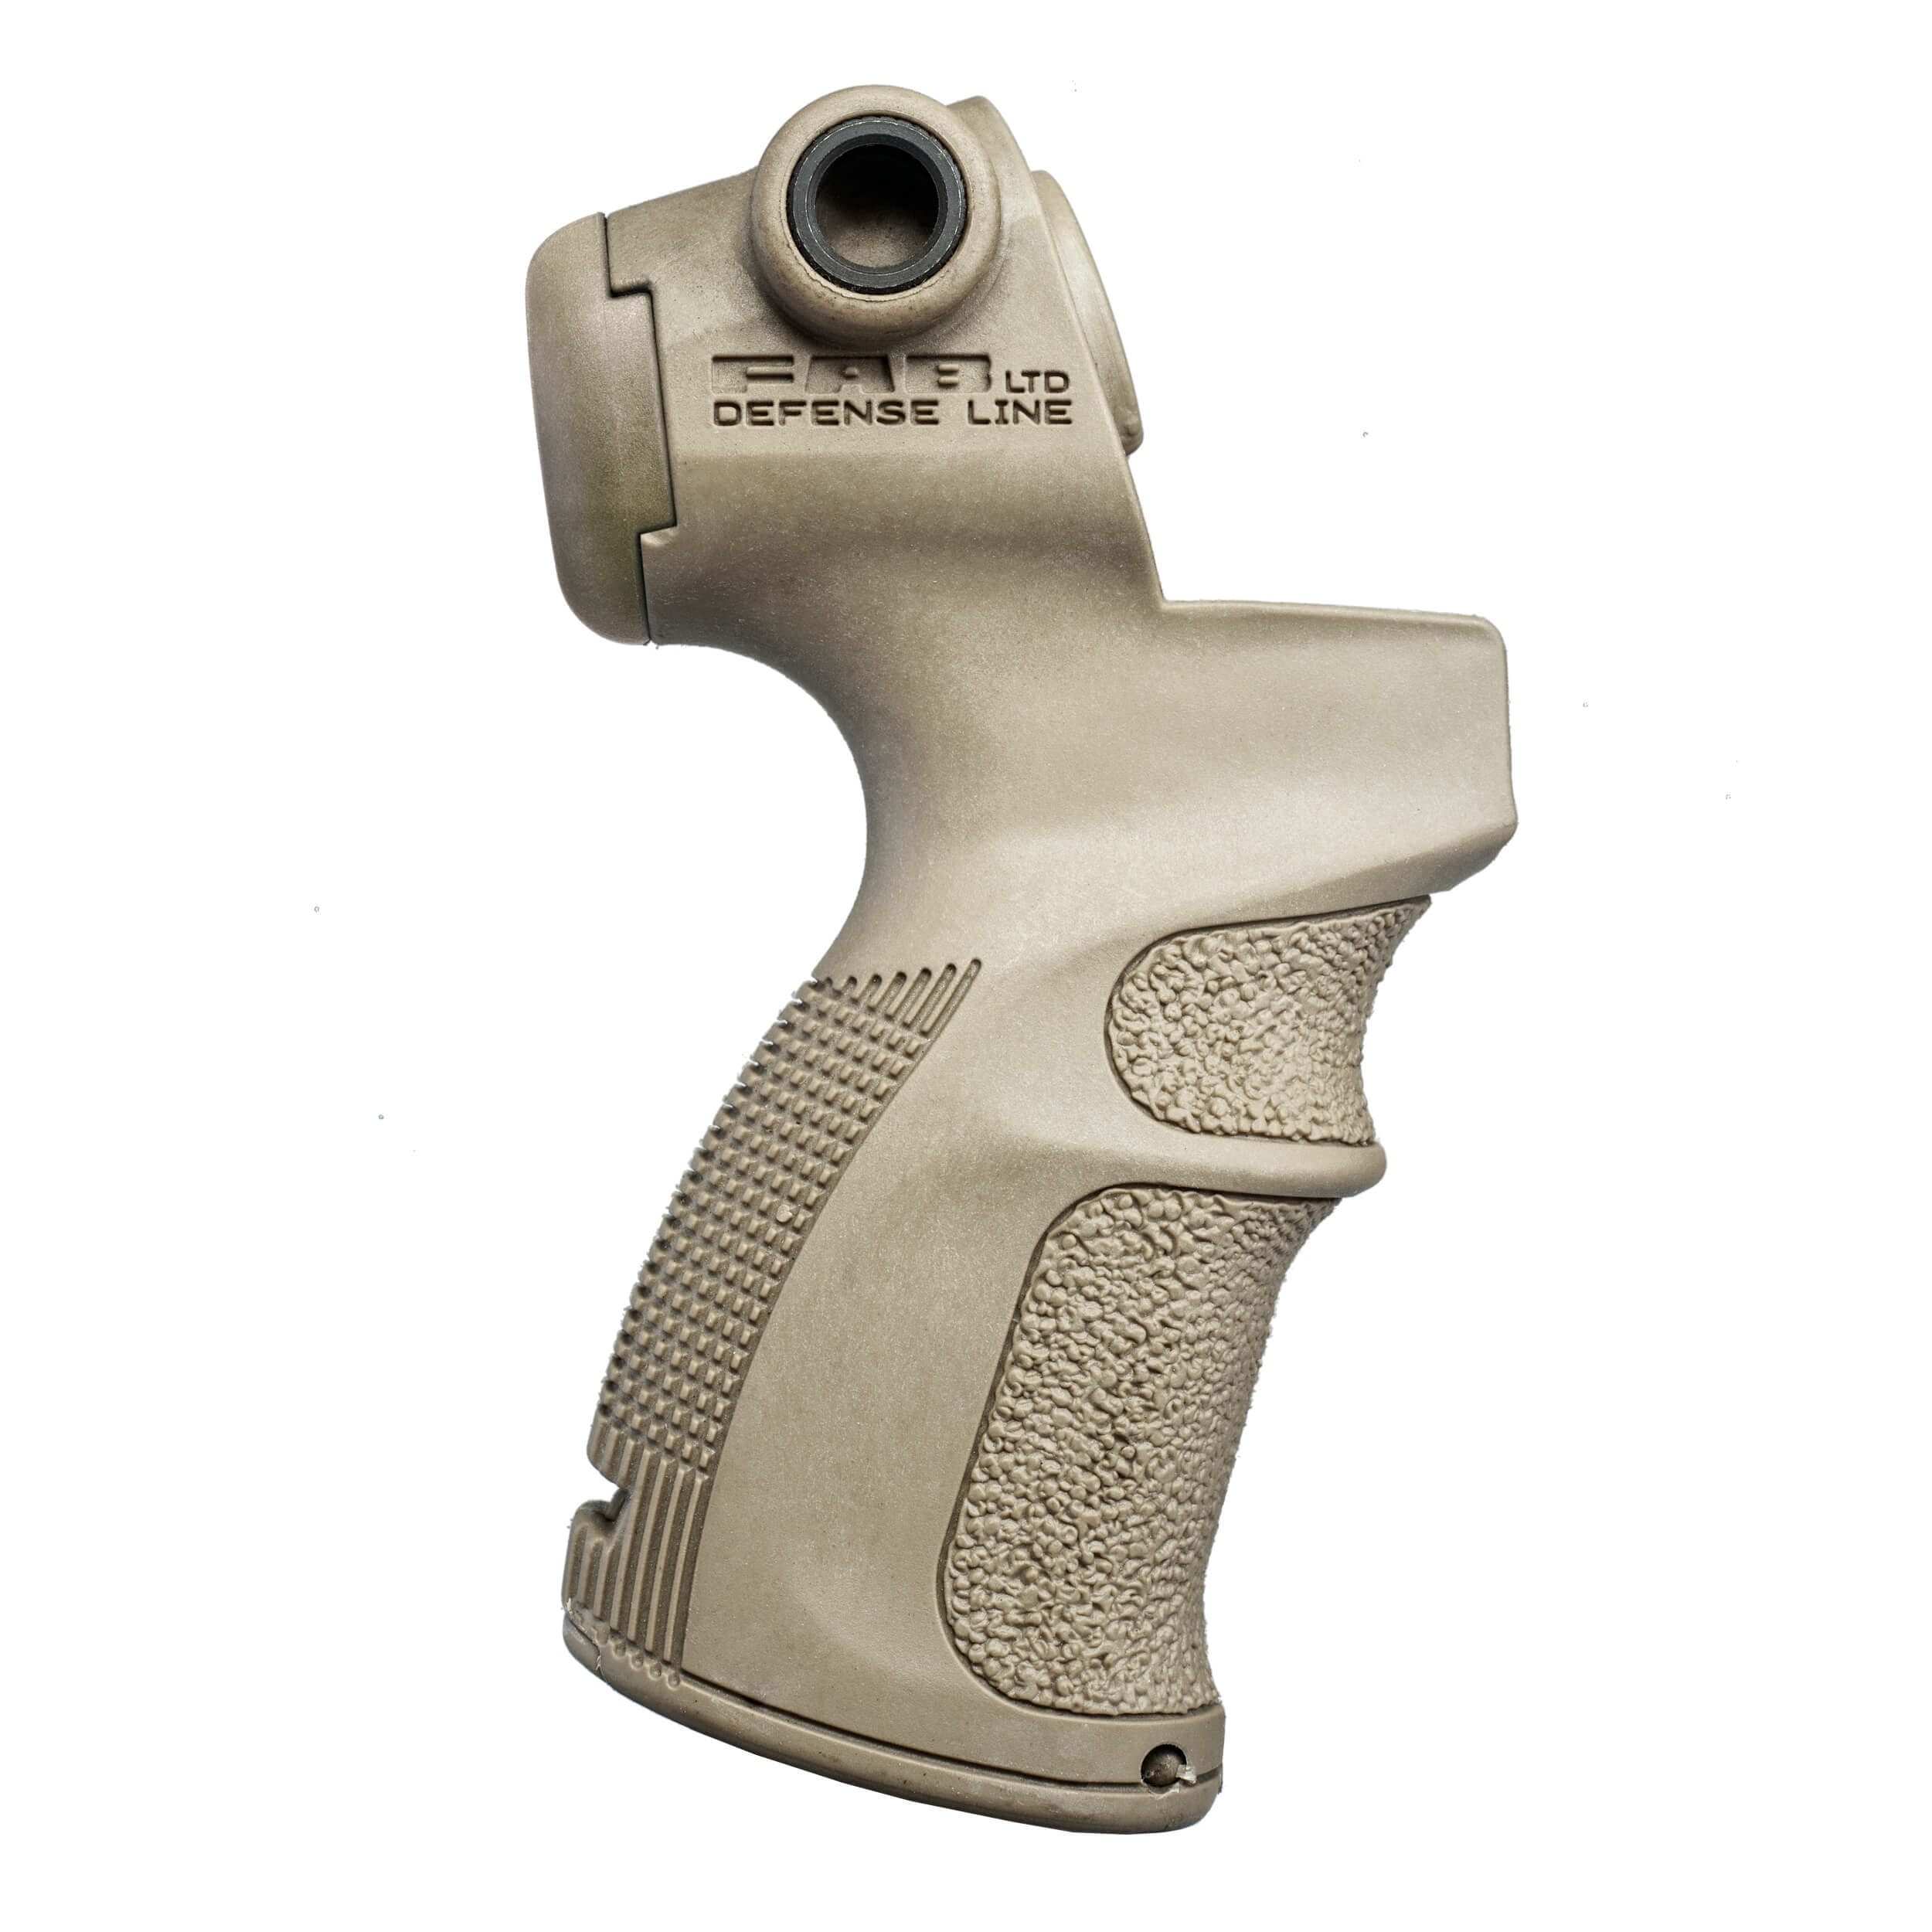 AGM-500 Pistol Grip for Mossberg 500 / 590